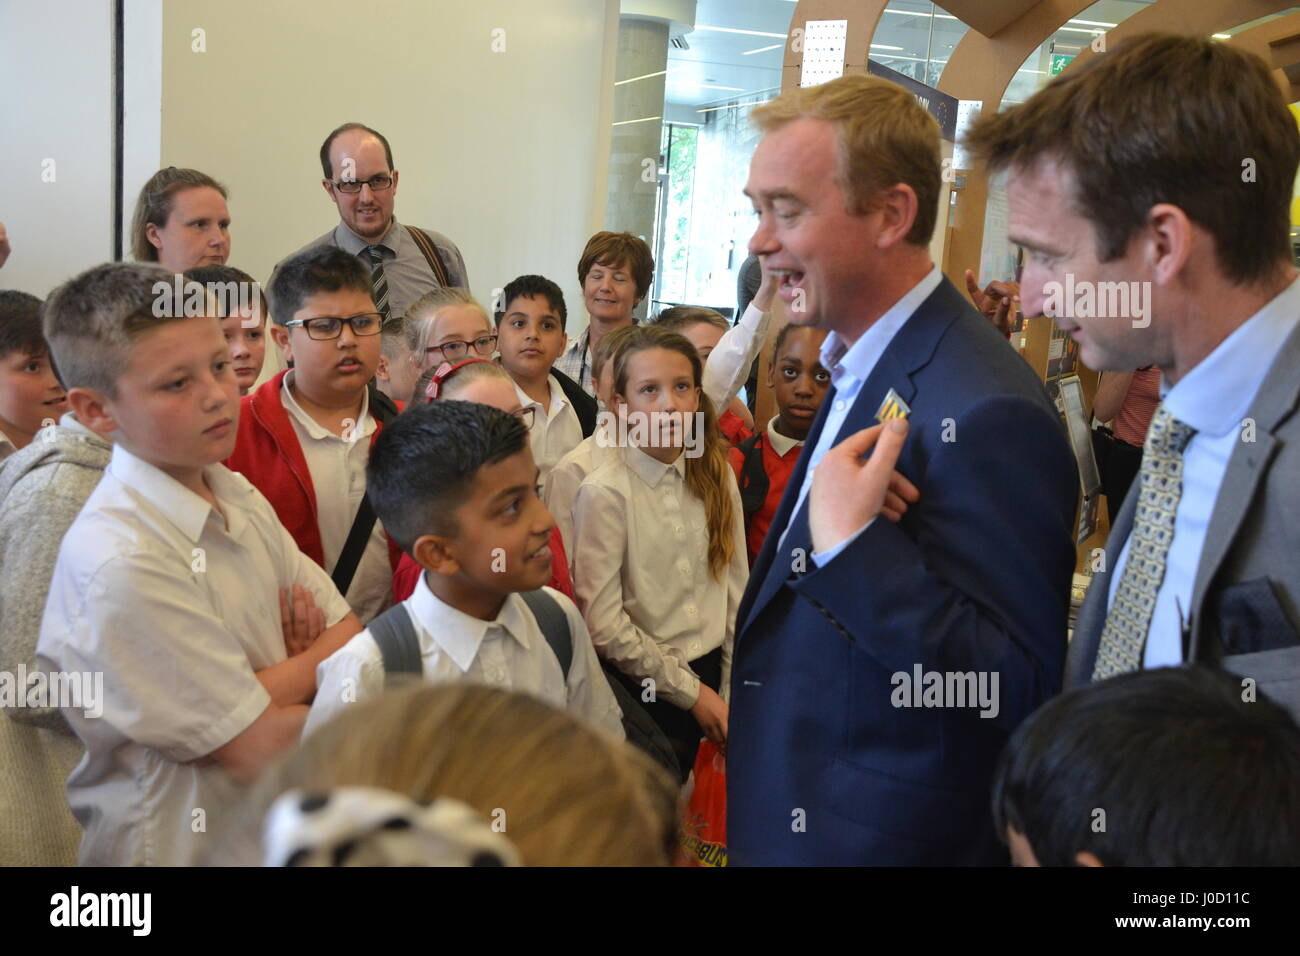 Tim Farron MP & Cllr. John Leech lead a pro-EU rally during a visit to the IN/OUT Euro Tunnel at the People's - Stock Image